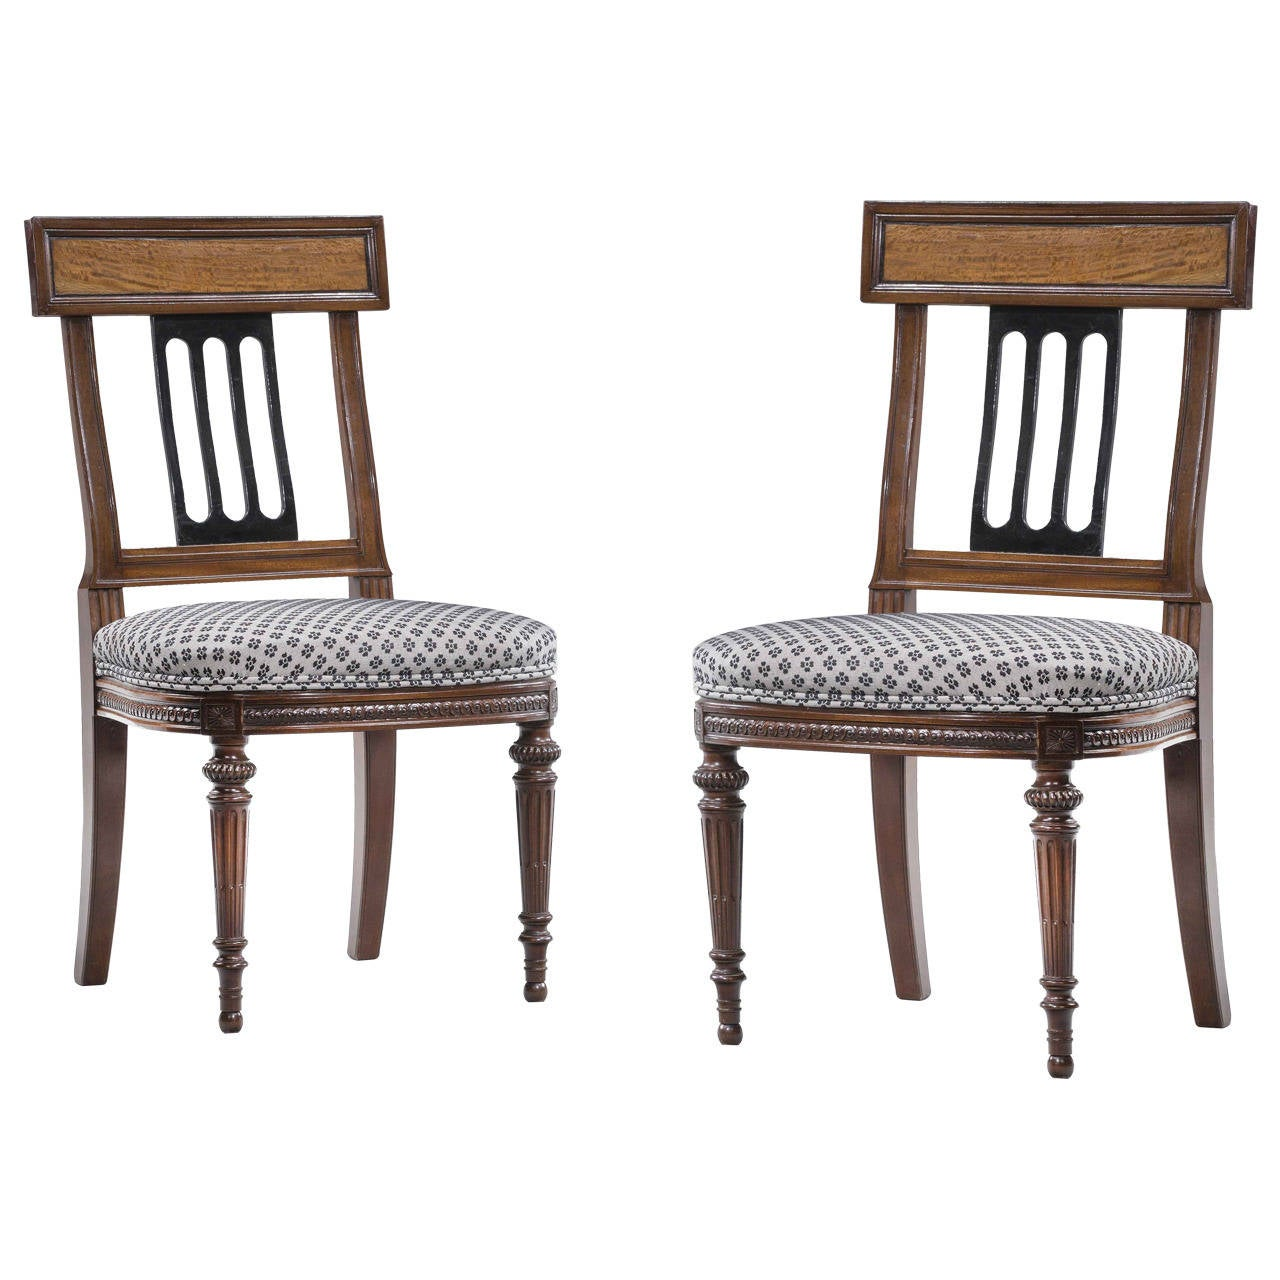 Set of Ten 19th Century Mahogany and Satinwood Dining Chairs For Sale